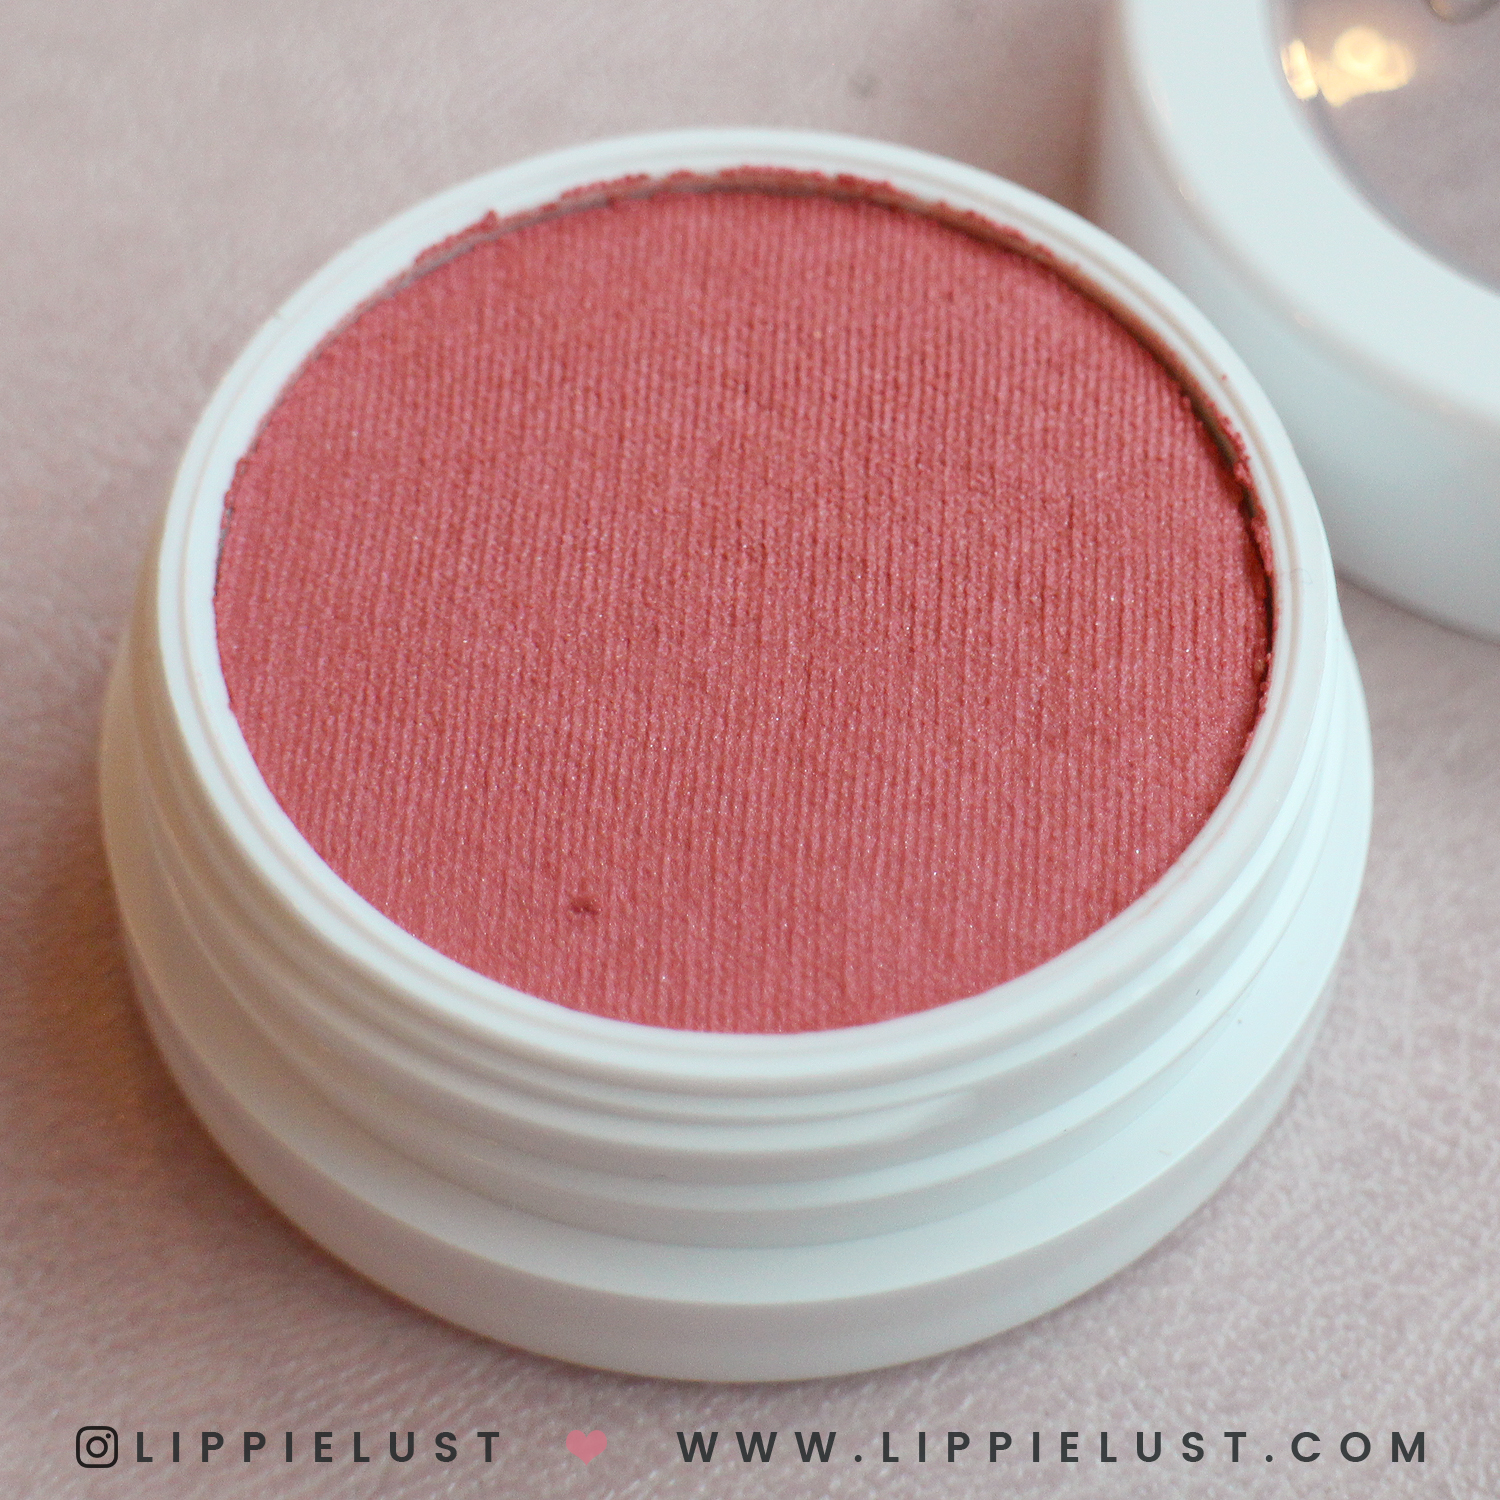 colourpop-hello-kitty-lippielust-11